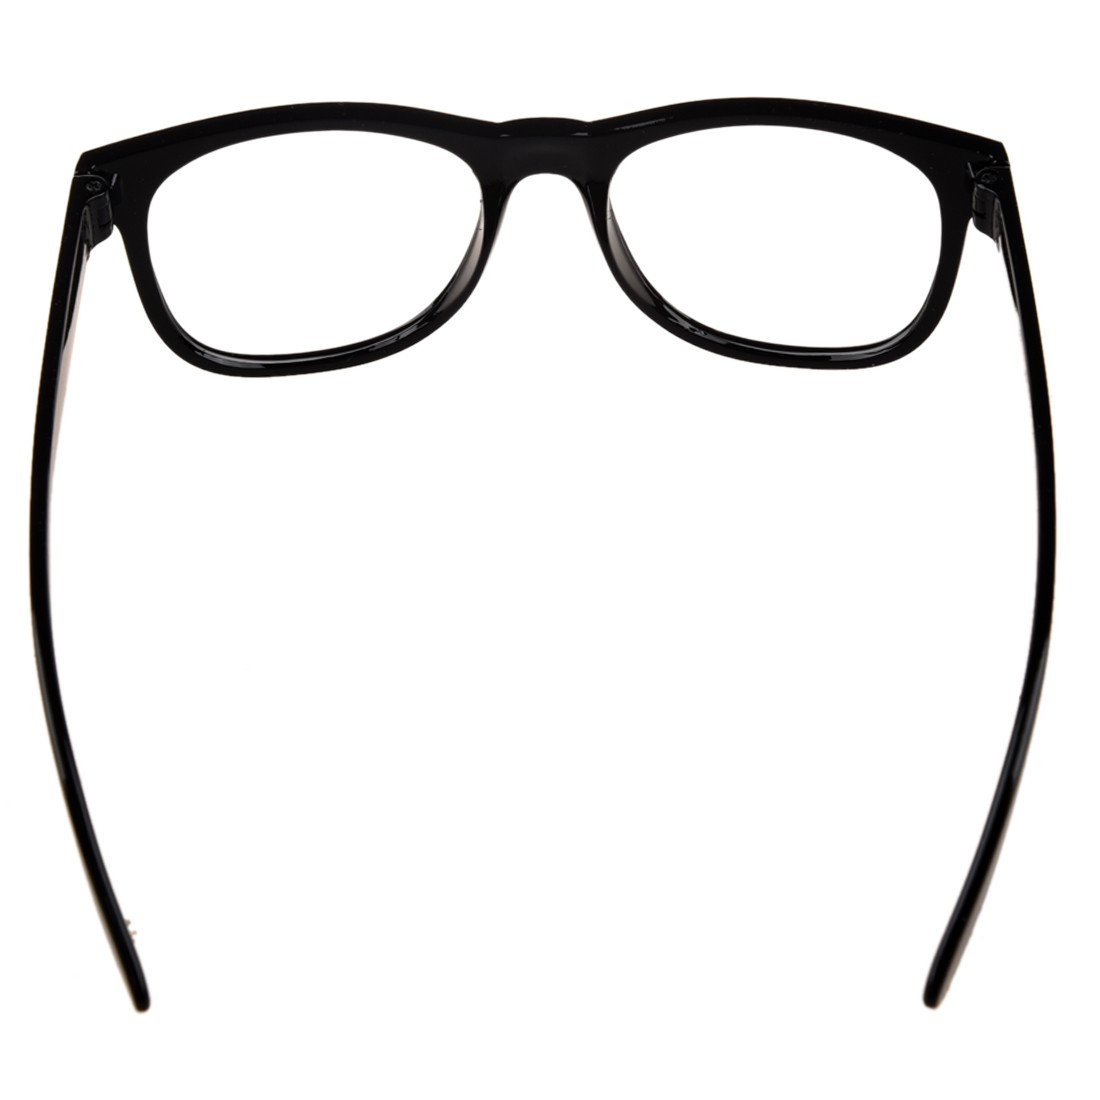 Stylish Boys Girls Children Kids Party Accessories Glasses Frame No